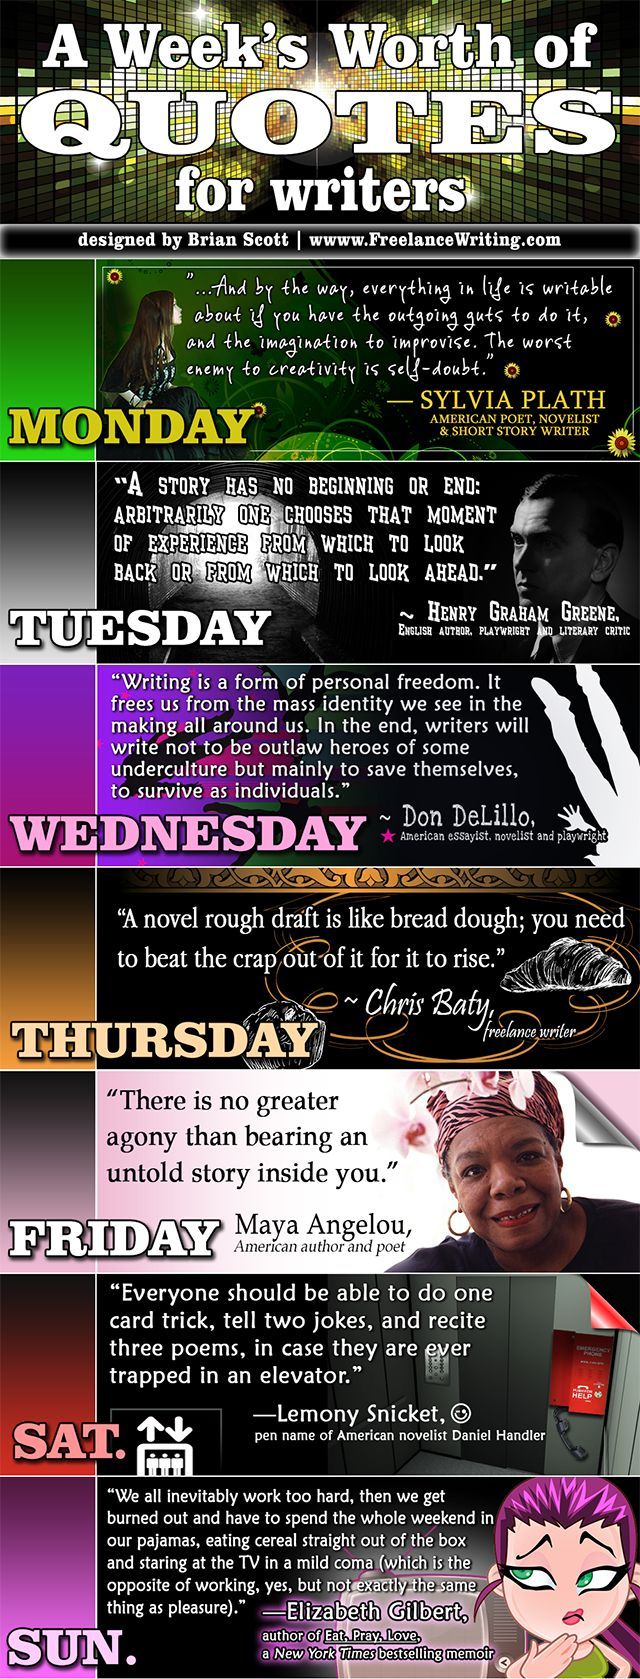 A week's worth of quotes to inspire  creative writers and freelance writers.     Feel free to re-distribute. I also have a custom version that allows you to add your own text to the bottom. Go to my blog, http://creativegenius101.blogspot.com/2013/02/free-infographic-weeks-worth-of-quotes.html